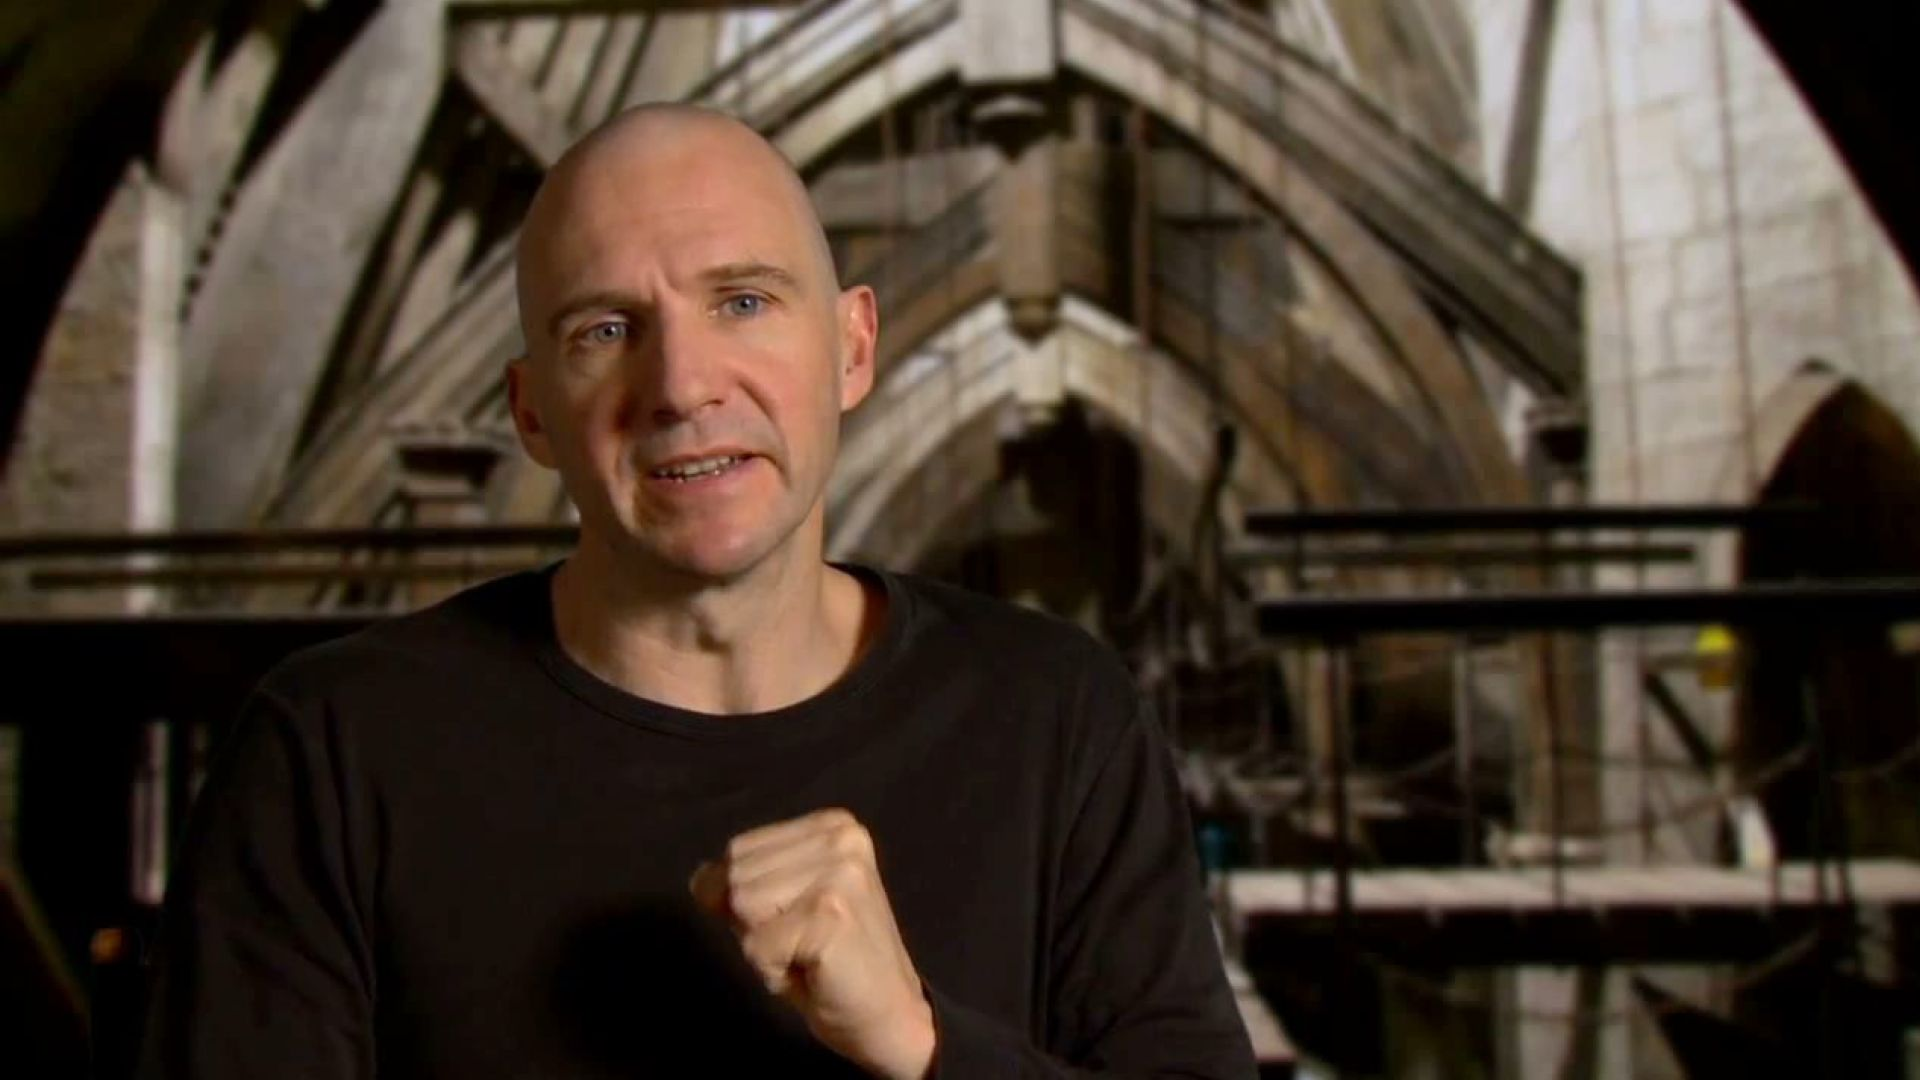 Ralph Fiennes on the crazy rage of Voldemort in the last Harry Potter